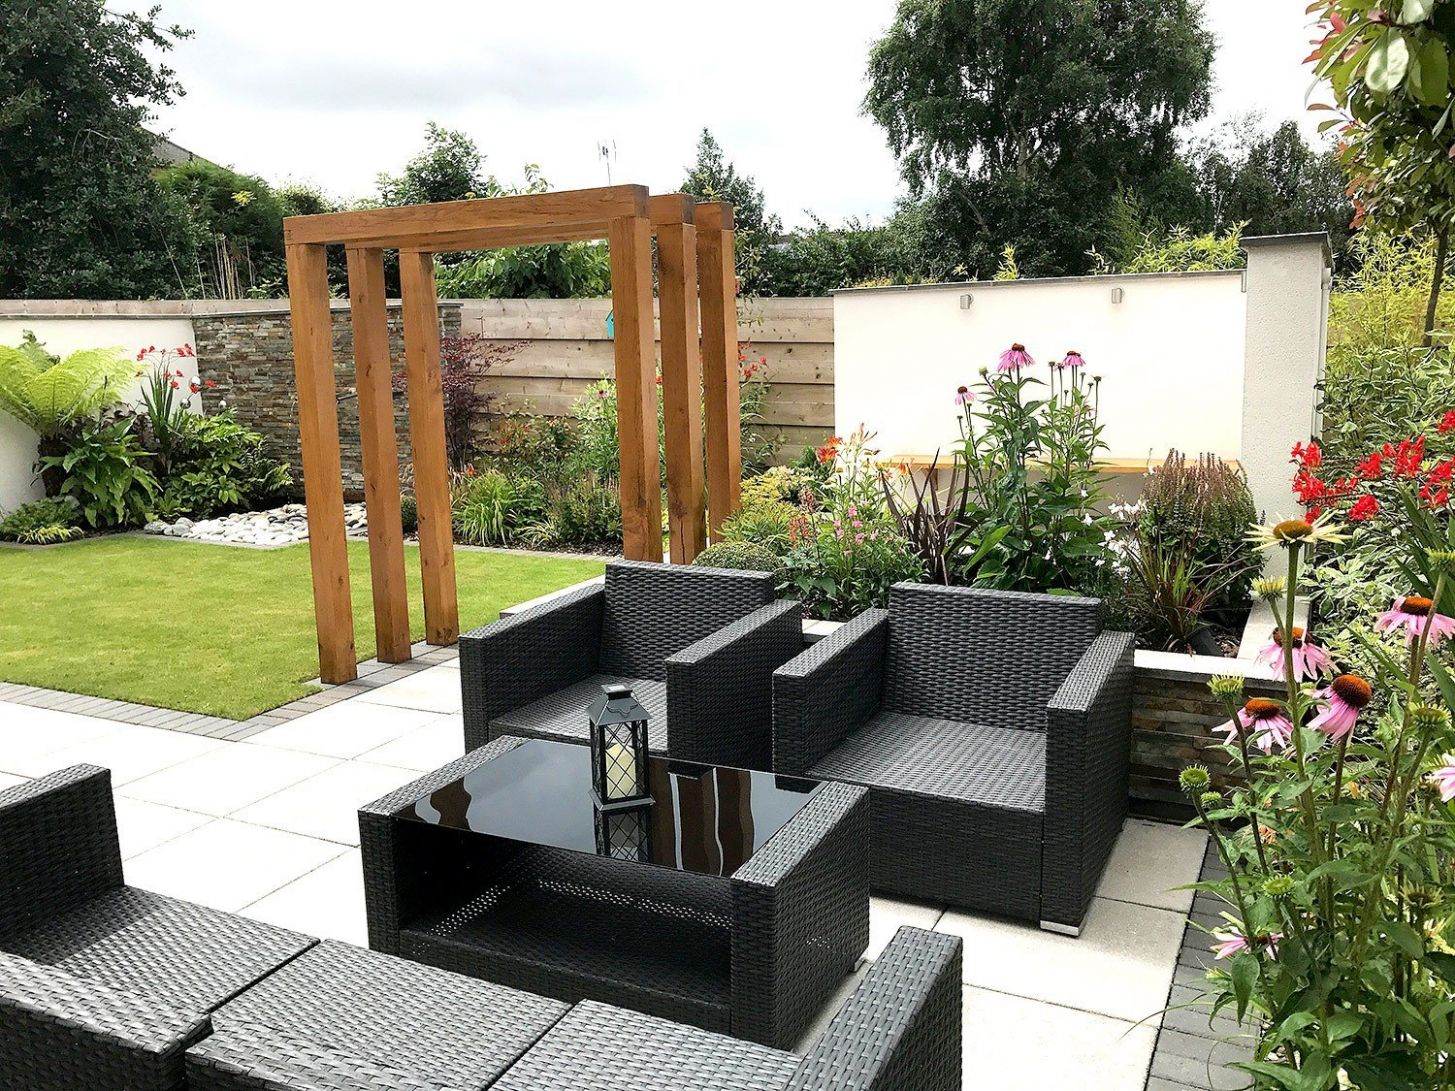 A Modern New Build Garden | Lush Garden Design - garden ideas new build